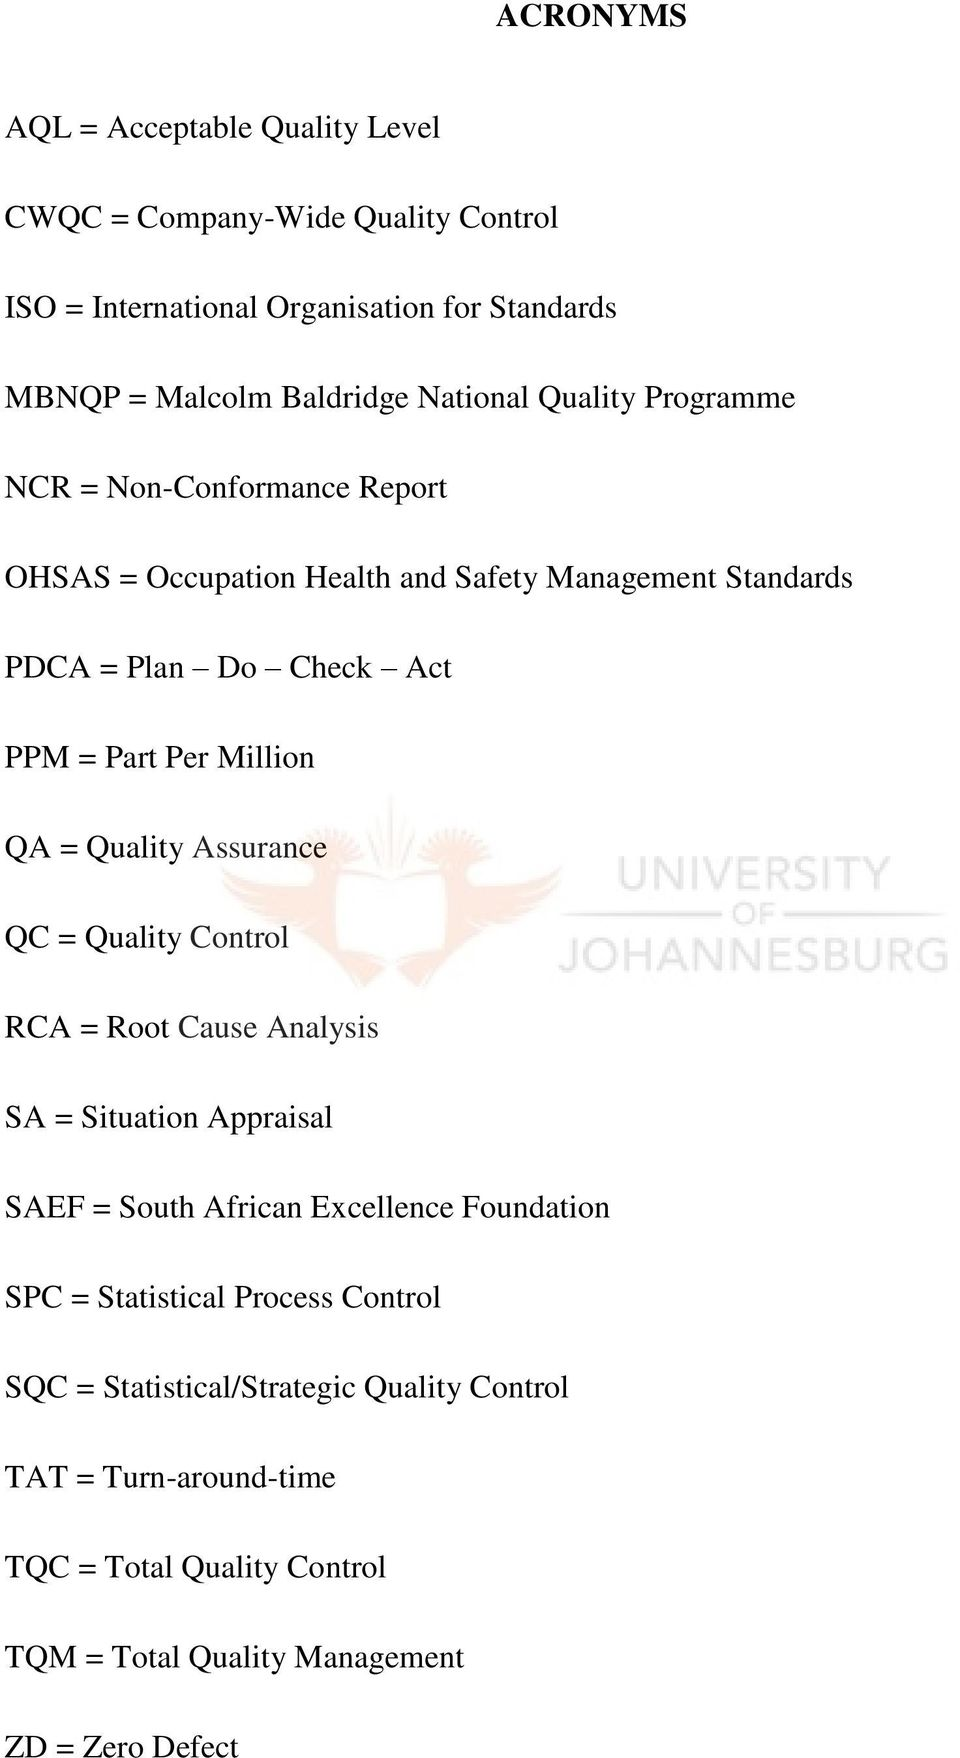 Dissertation Report On Total Quality Management